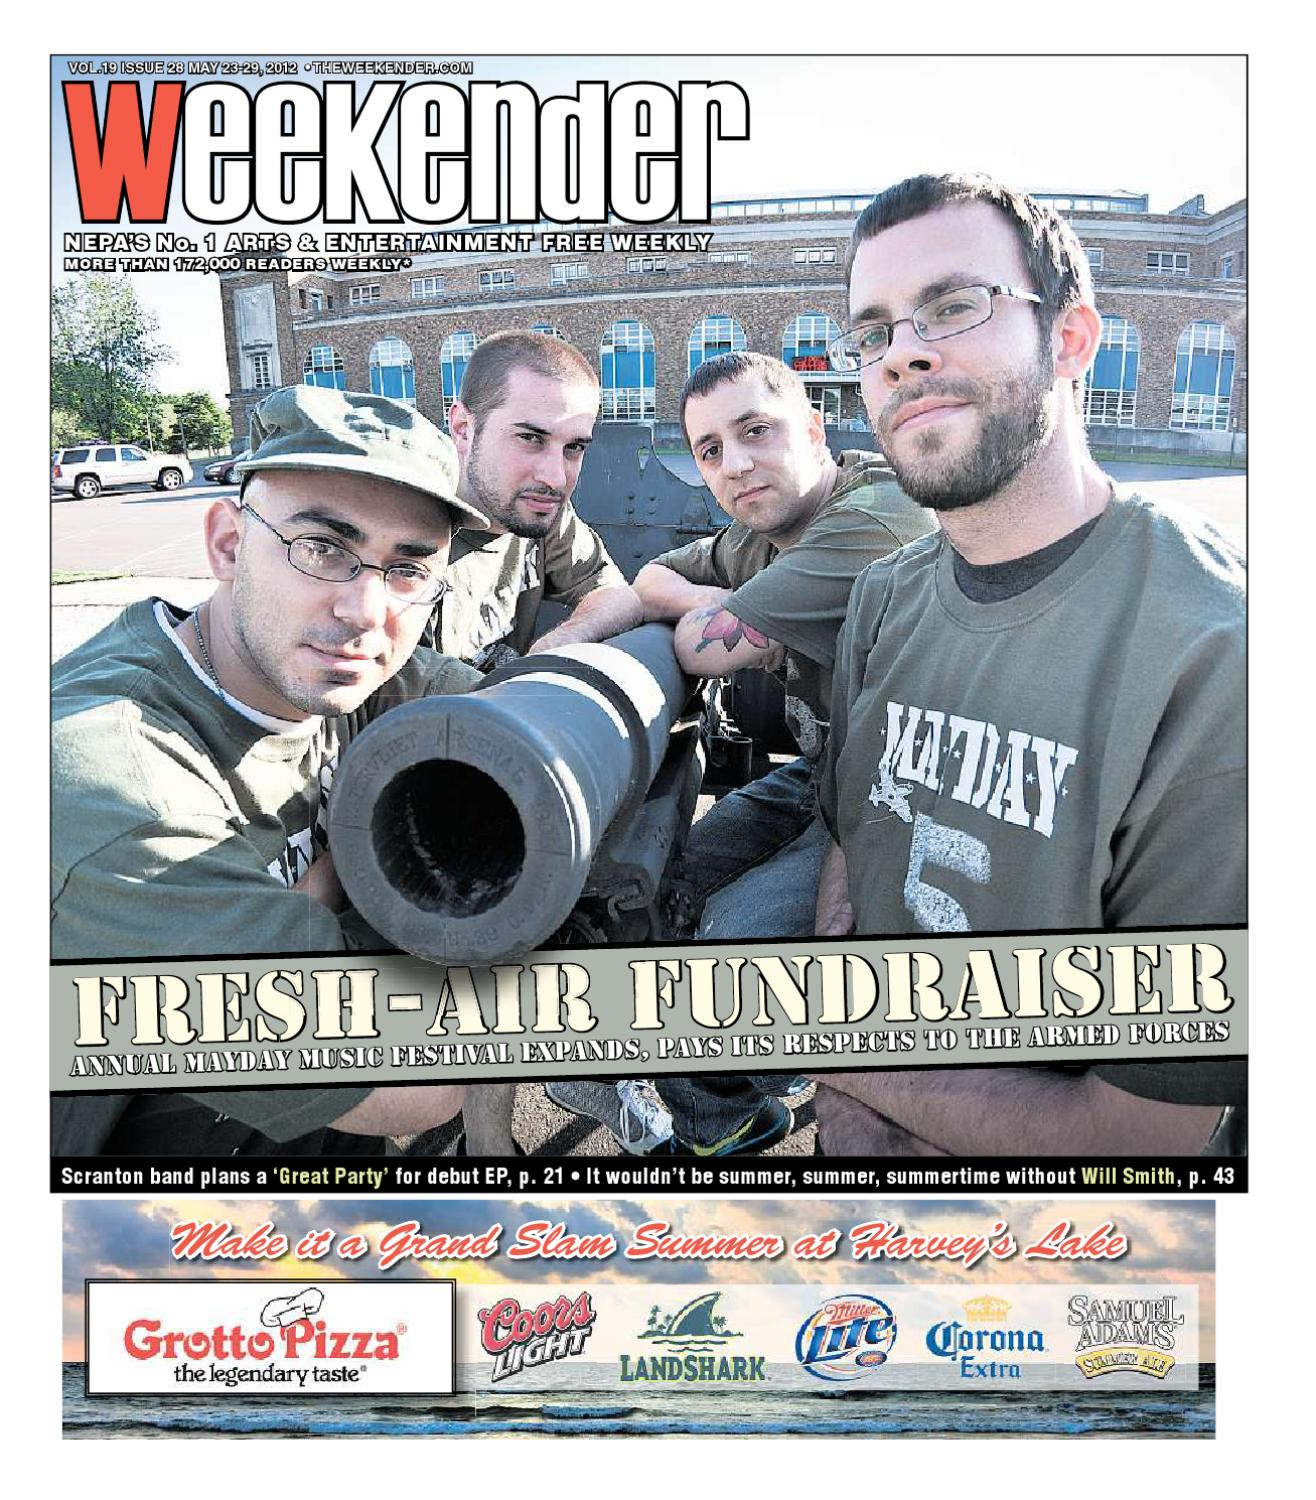 The Weekender 05 23 2012 by The Wilkes Barre Publishing pany issuu